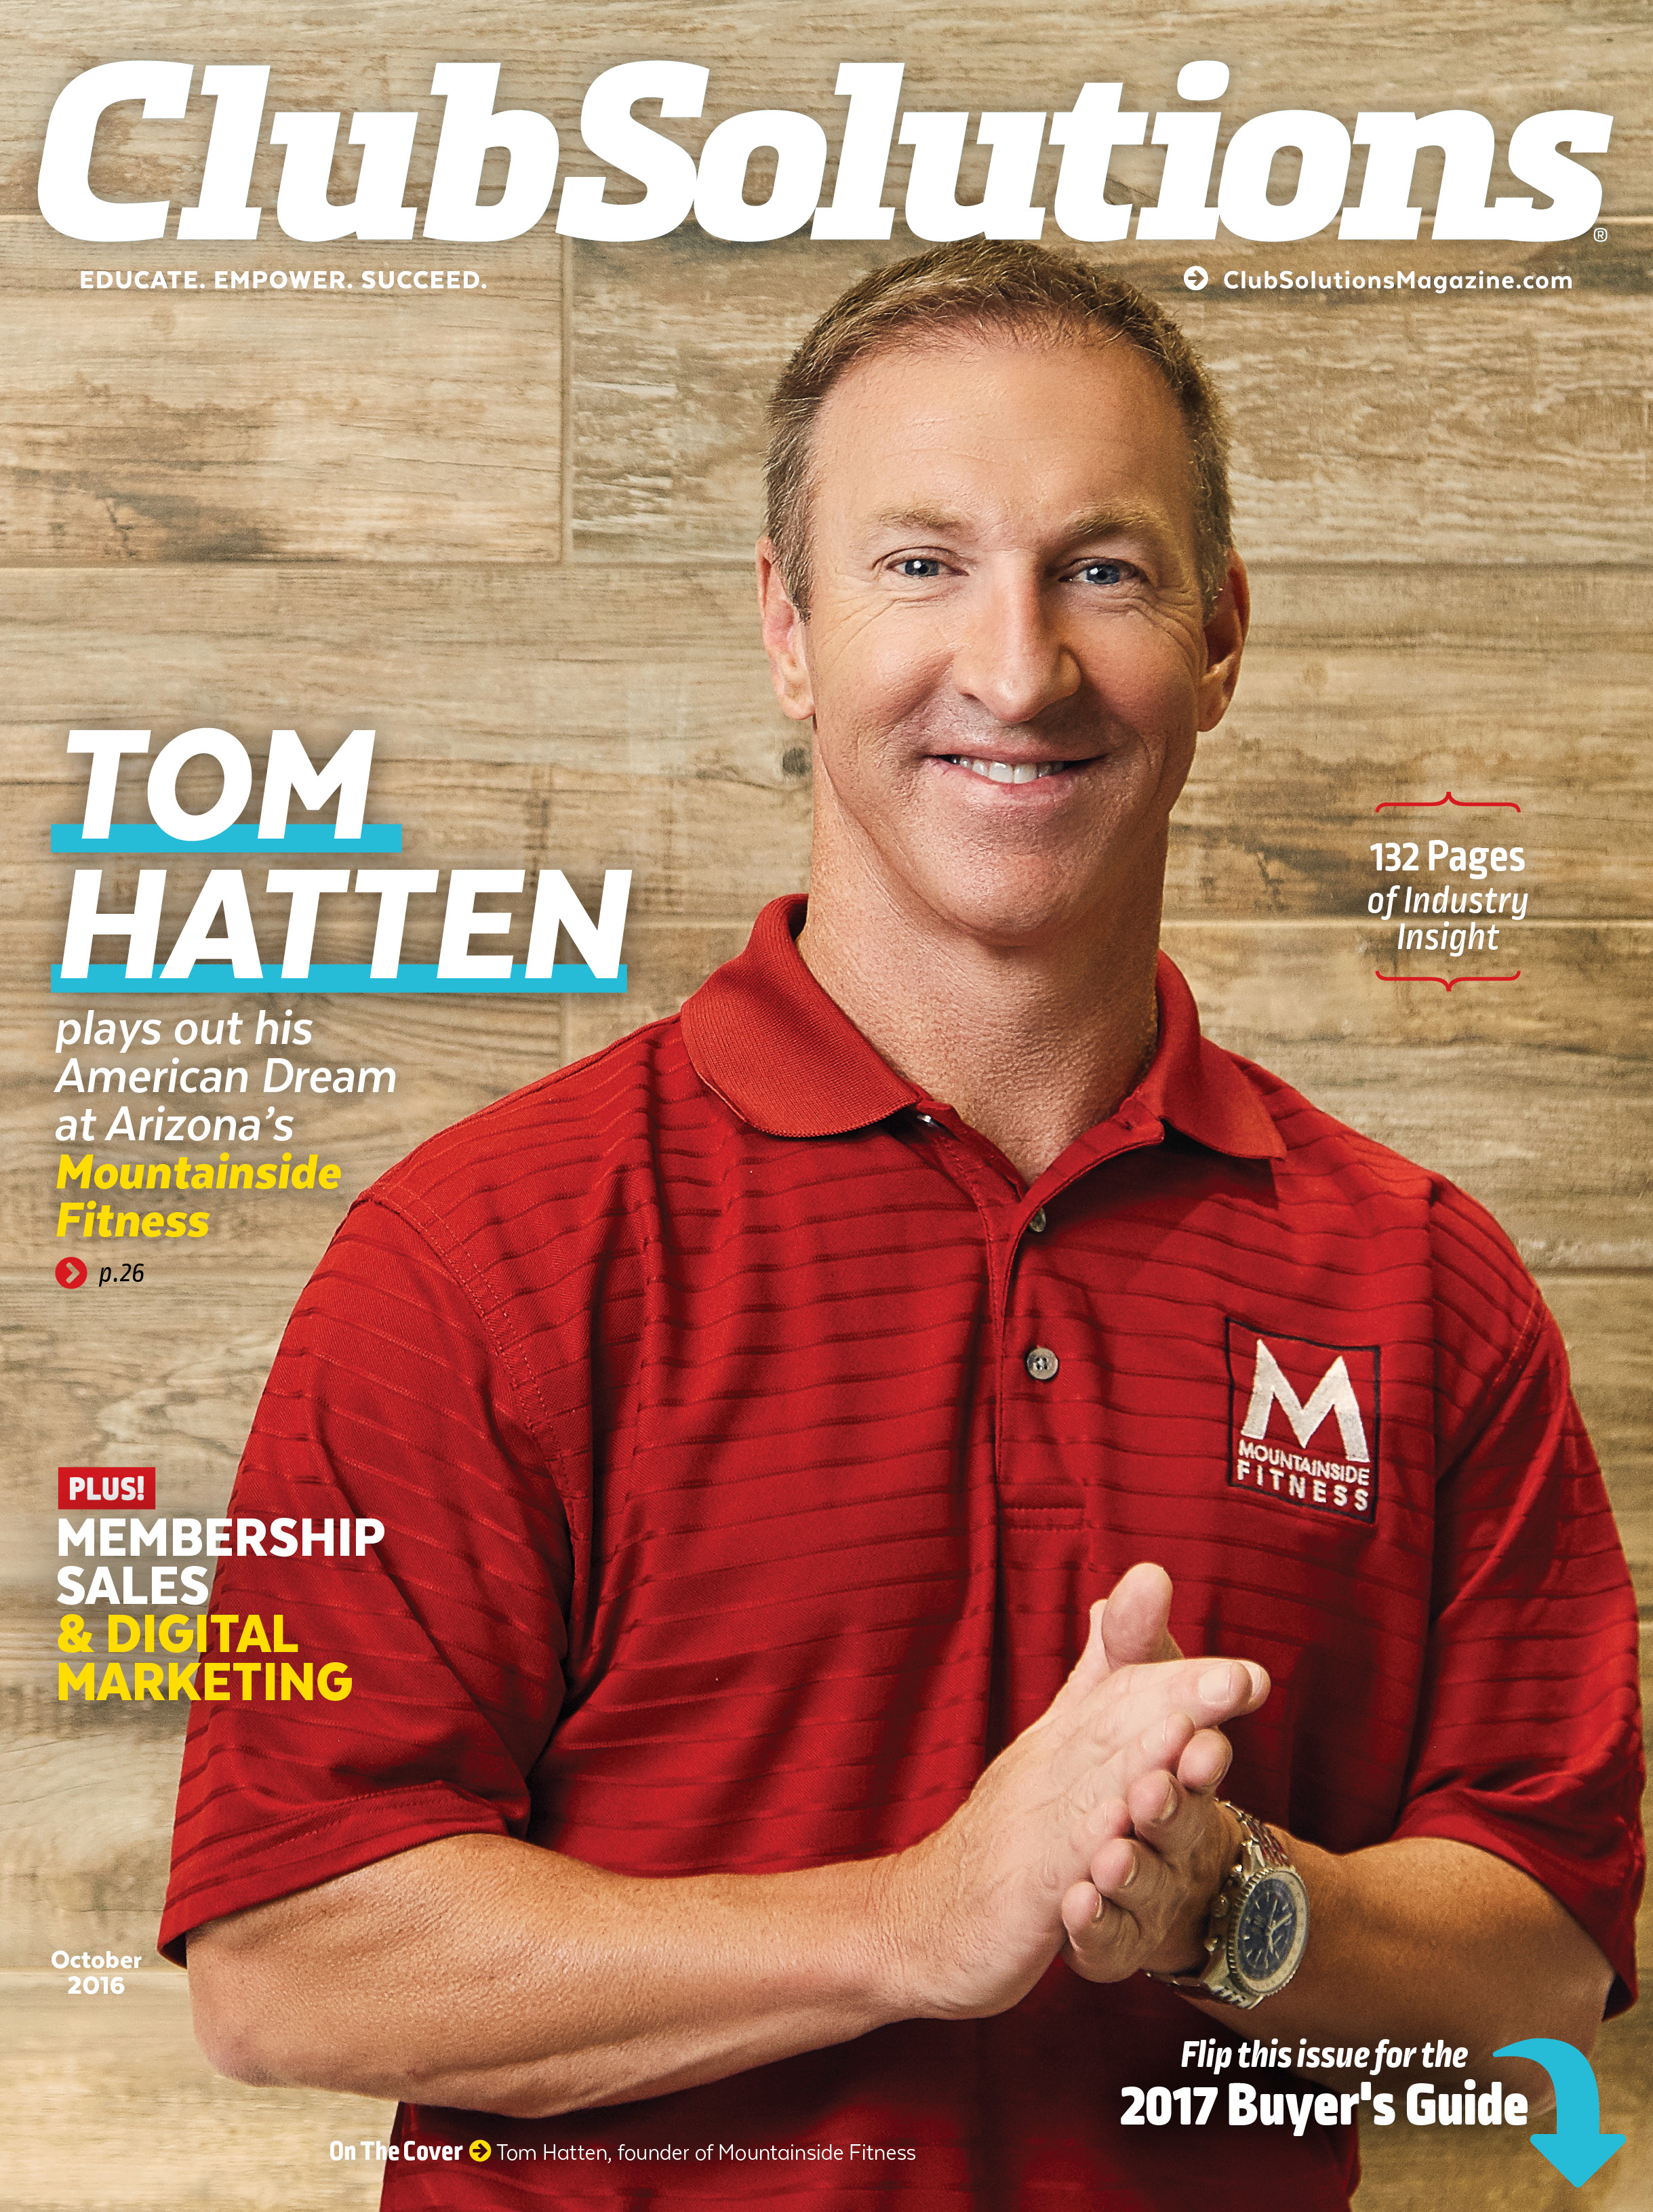 Club Solutions Magazine Cover - Mountainside Fitness Tom Hatten